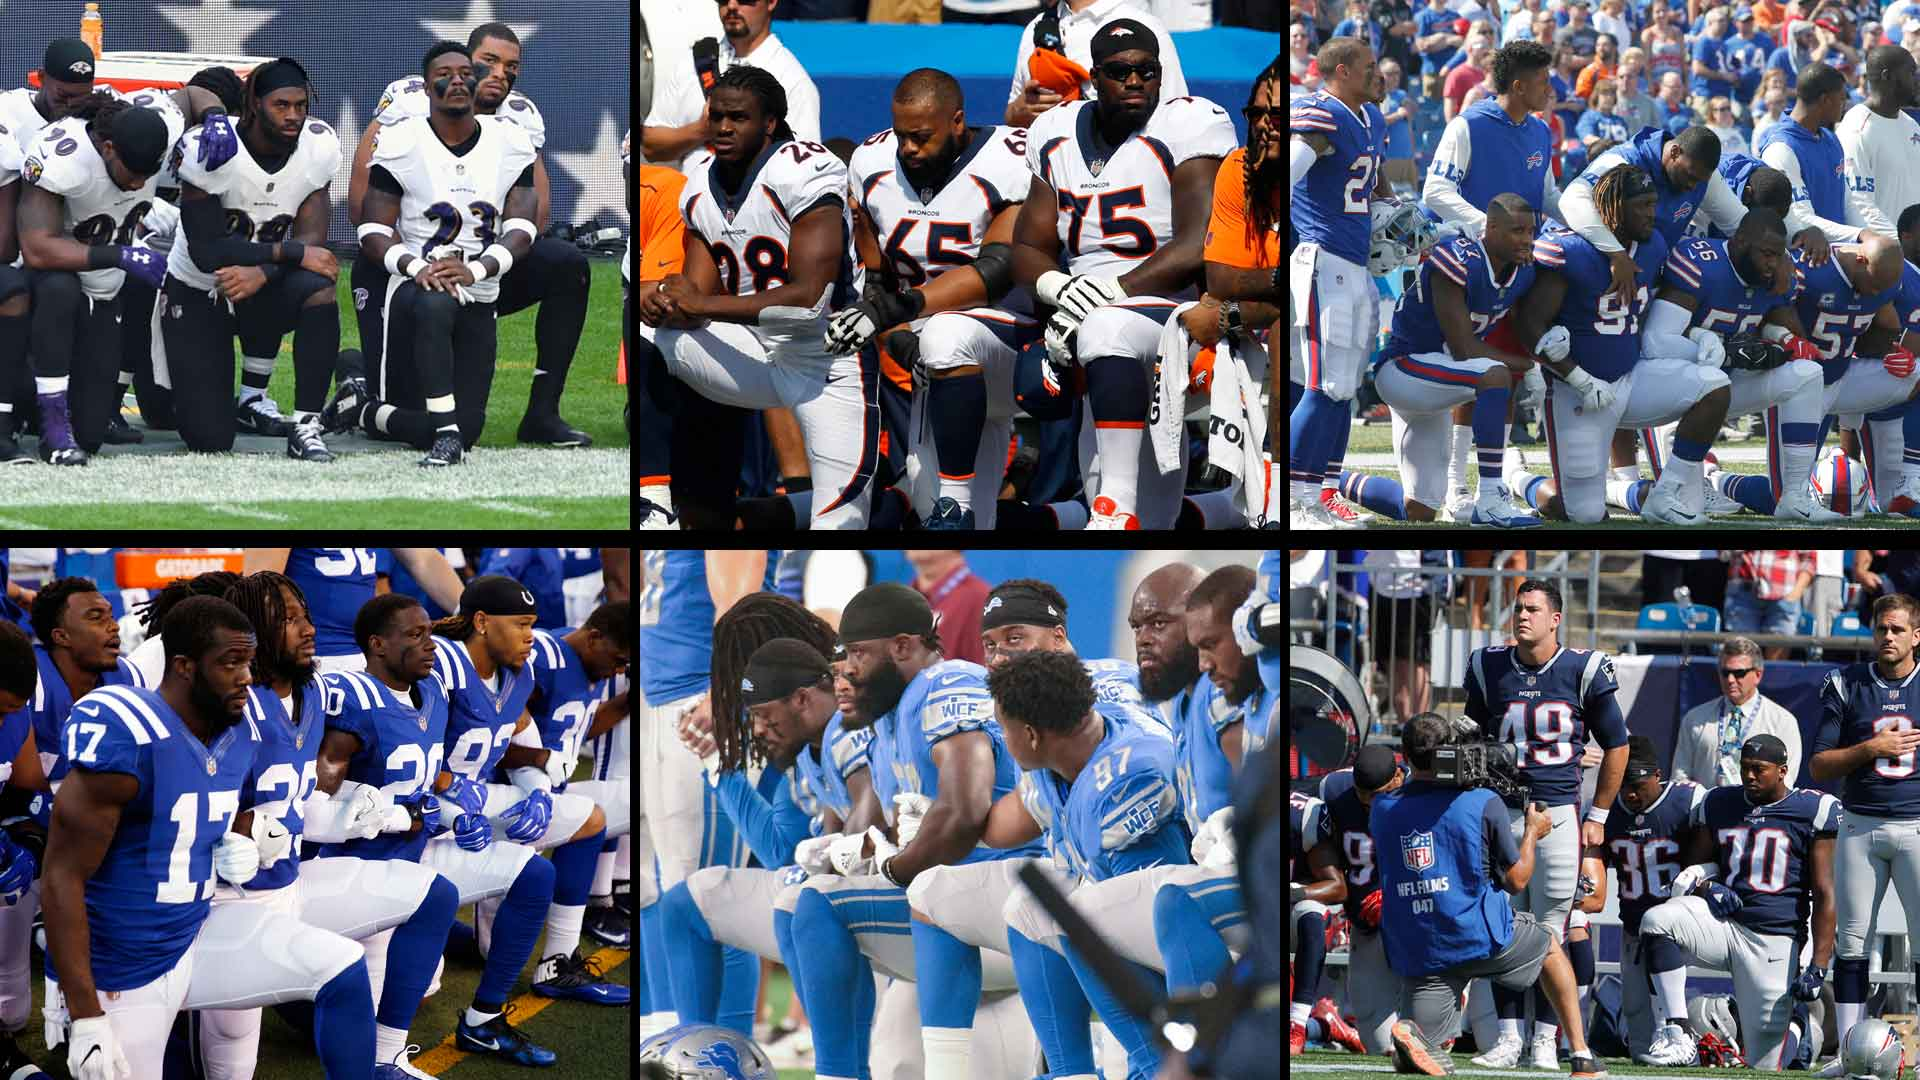 NFL player protests sweep league after President Donald Trump's remarks